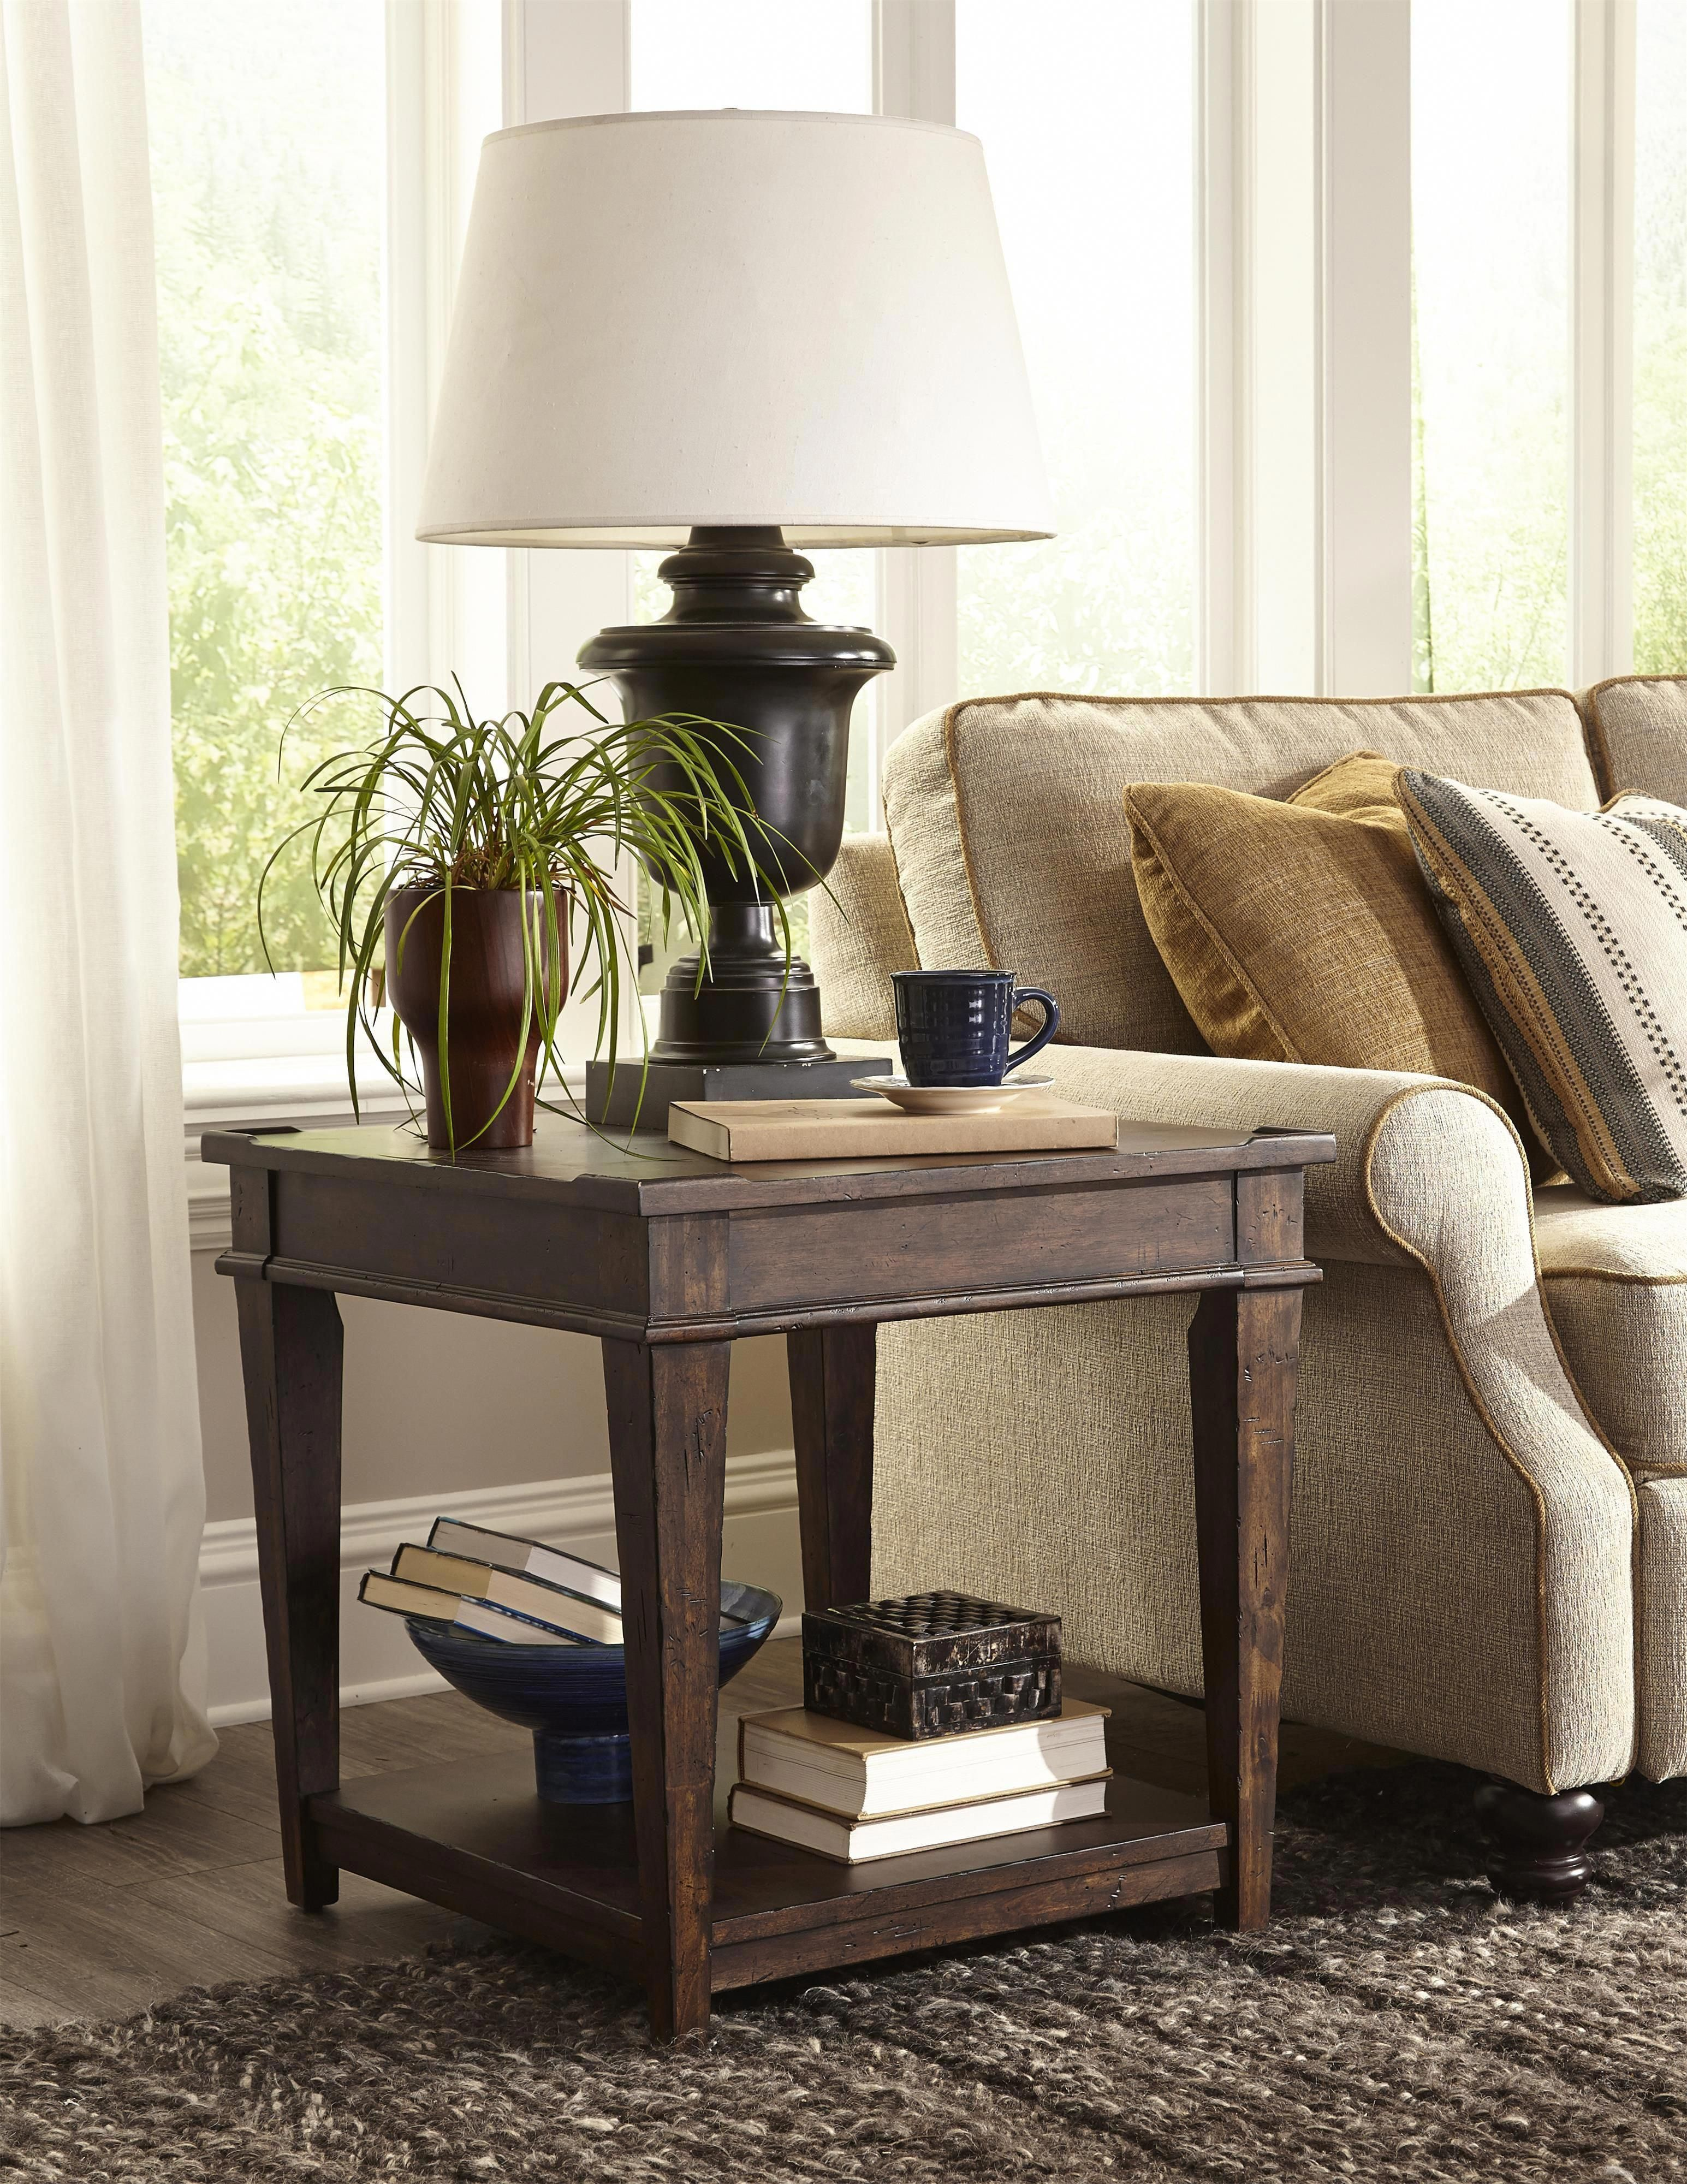 c2a46b345b2c Trisha Yearwood Home End Table with One Shelf by Trisha Yearwood Home  Collection by Klaussner available